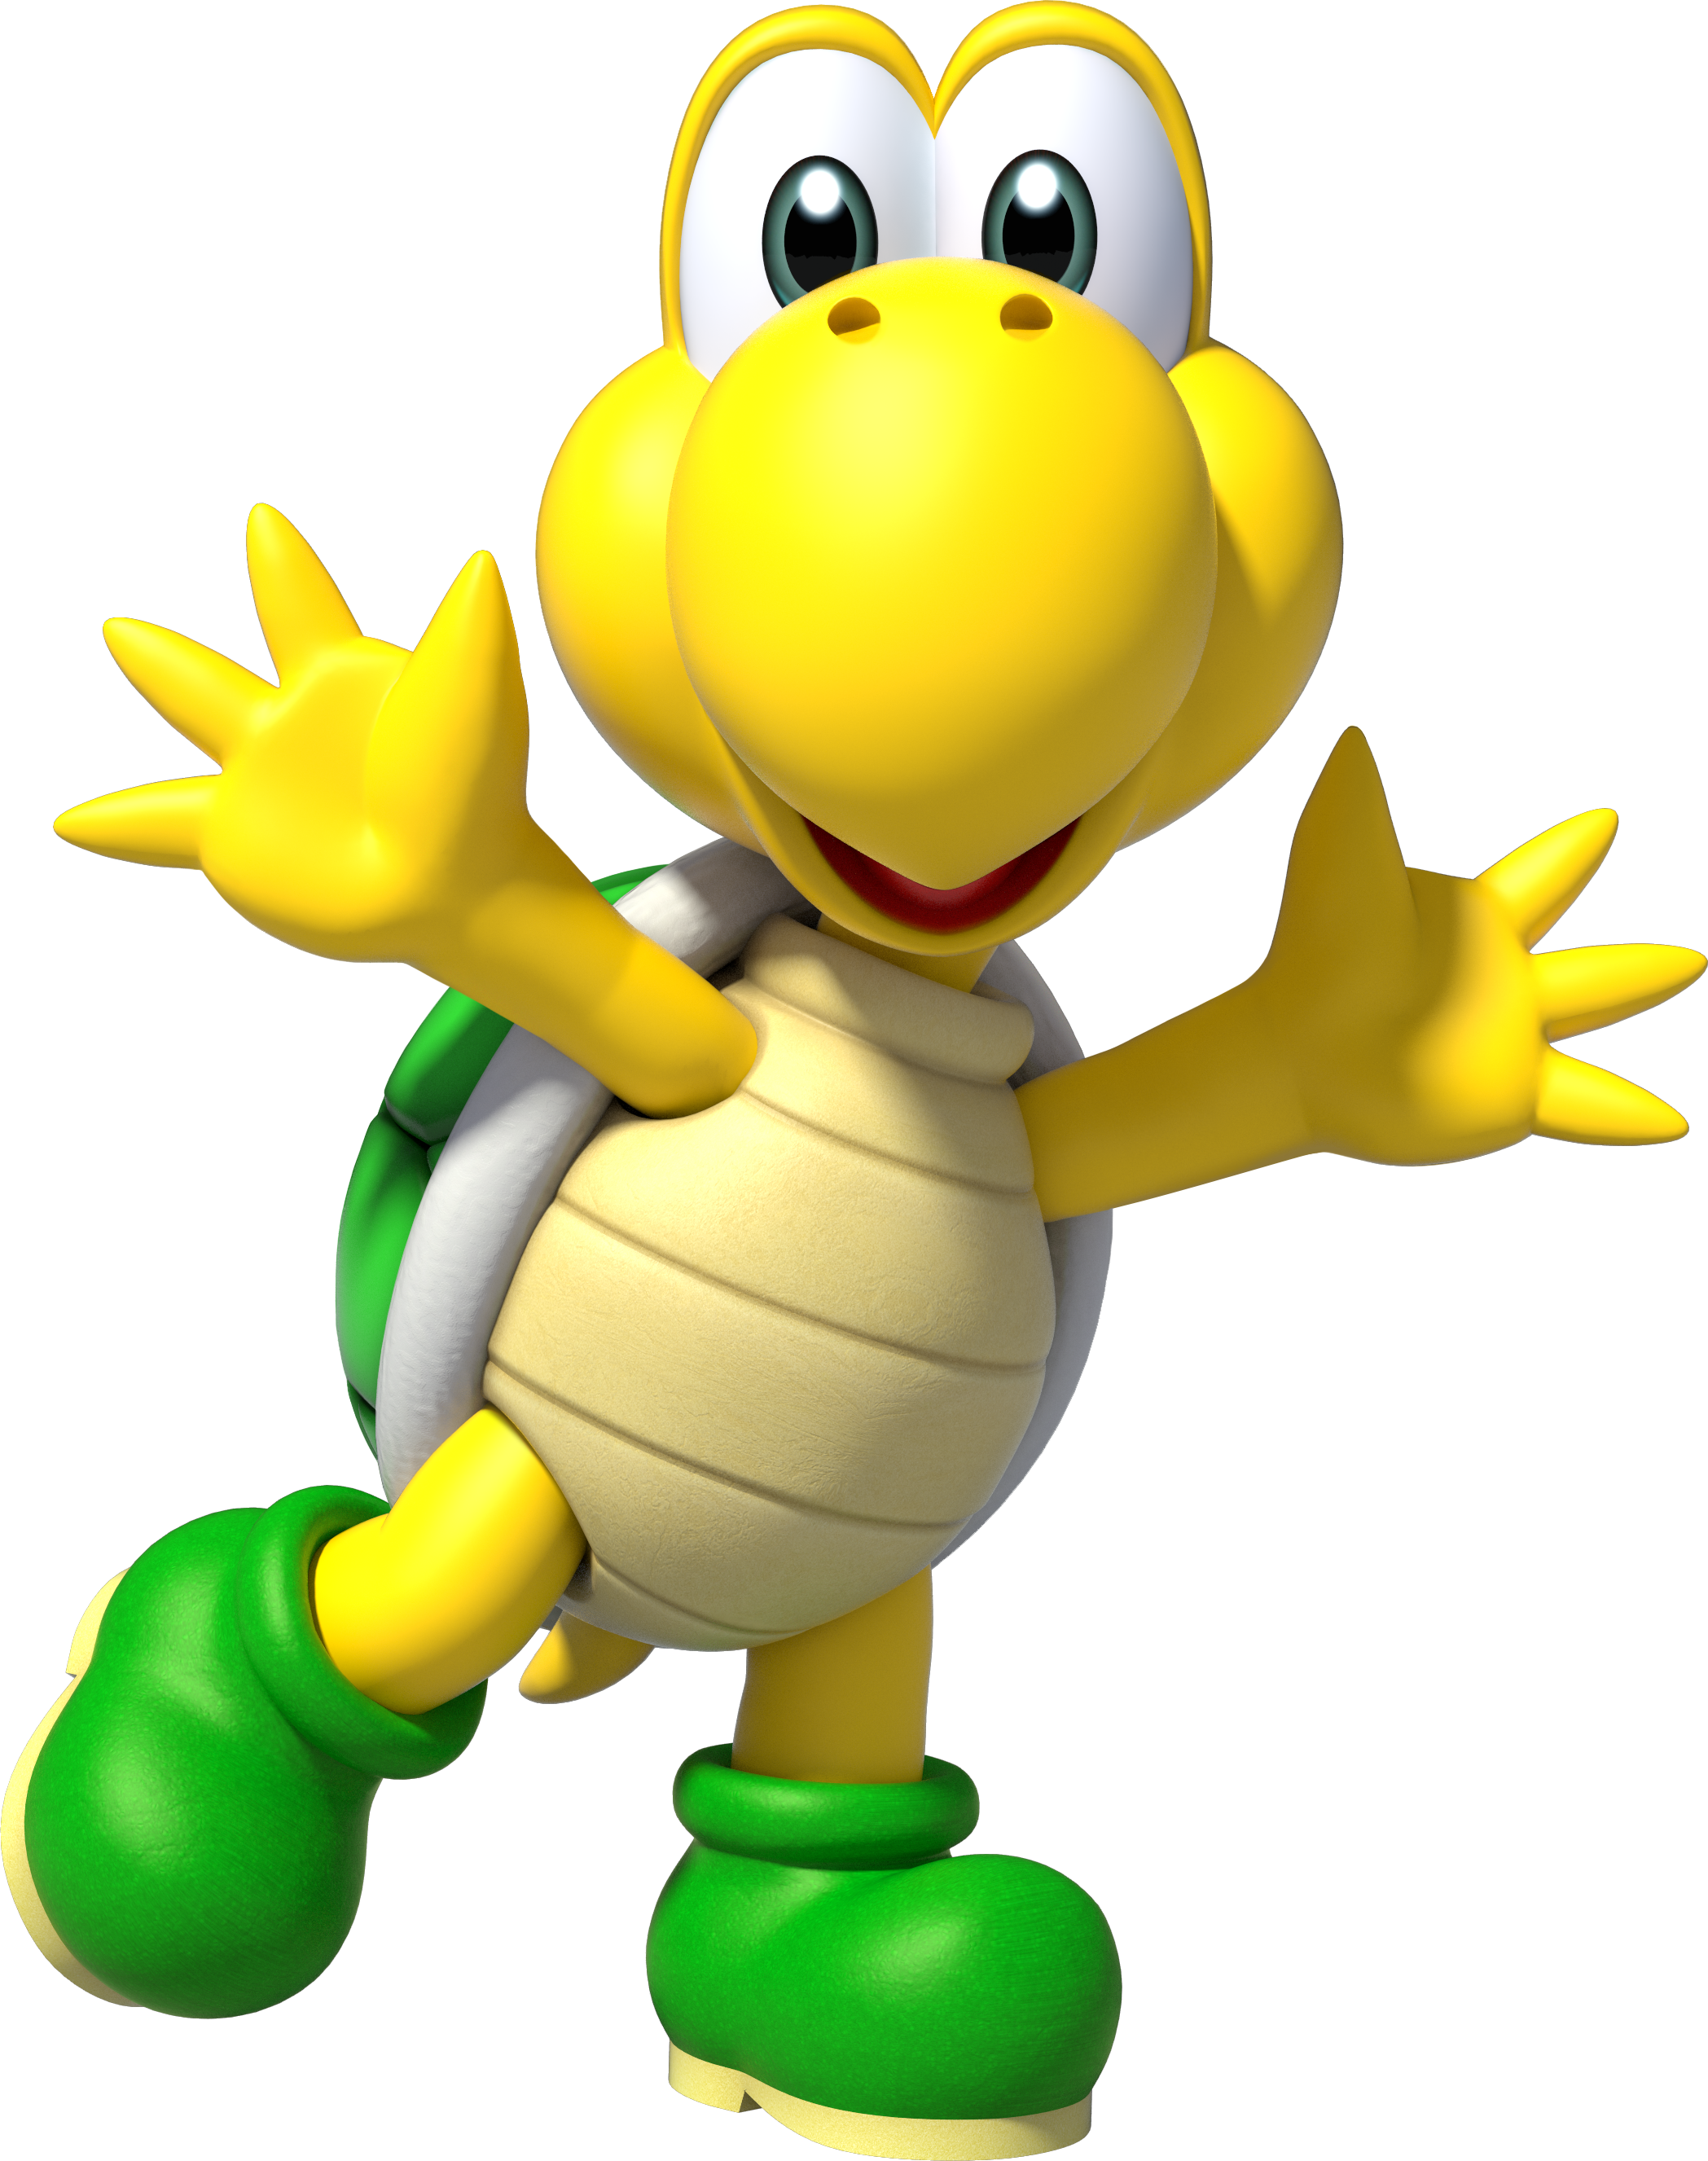 b113eb1dc17 Artwork of Koopa Troopa from Super Mario Party.